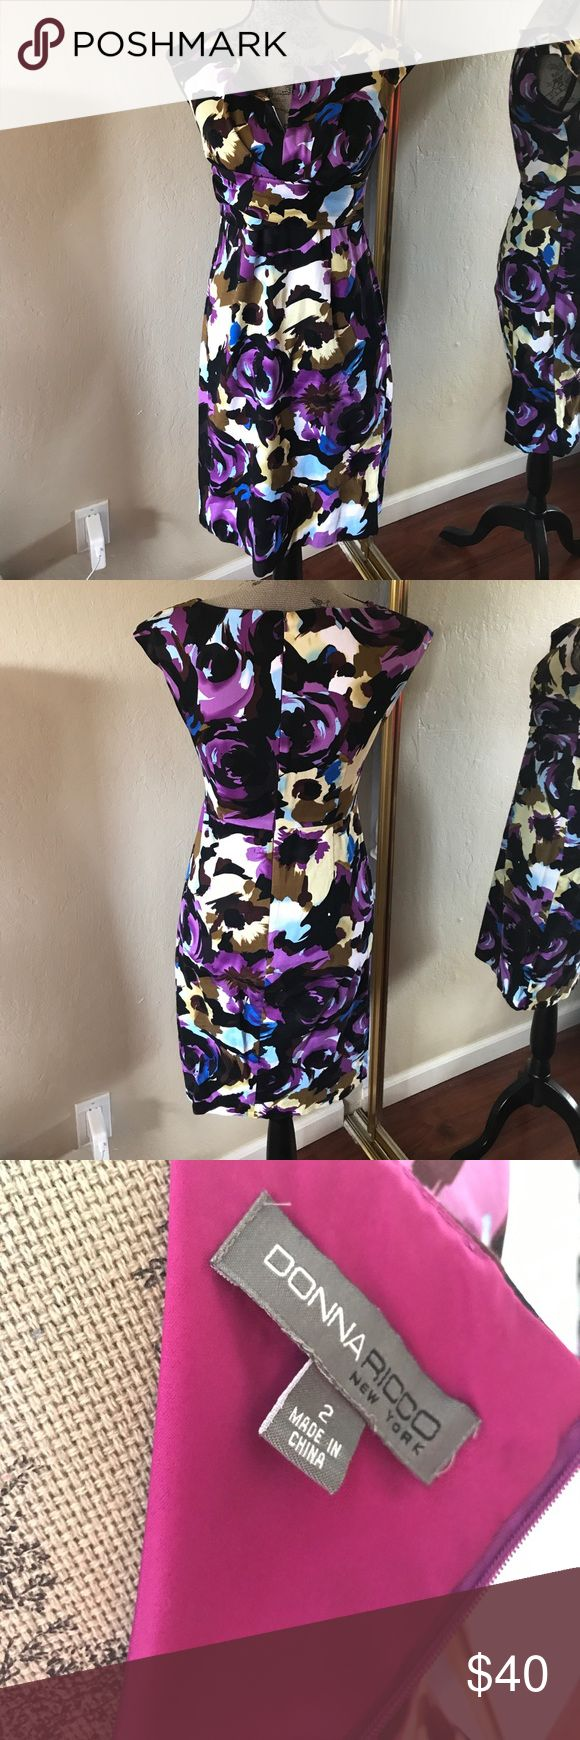 Donna Ricco dress Size 2 Donna Ricco dress Size 2. No flaws. Very pretty floral dress. Donna Ricco Dresses